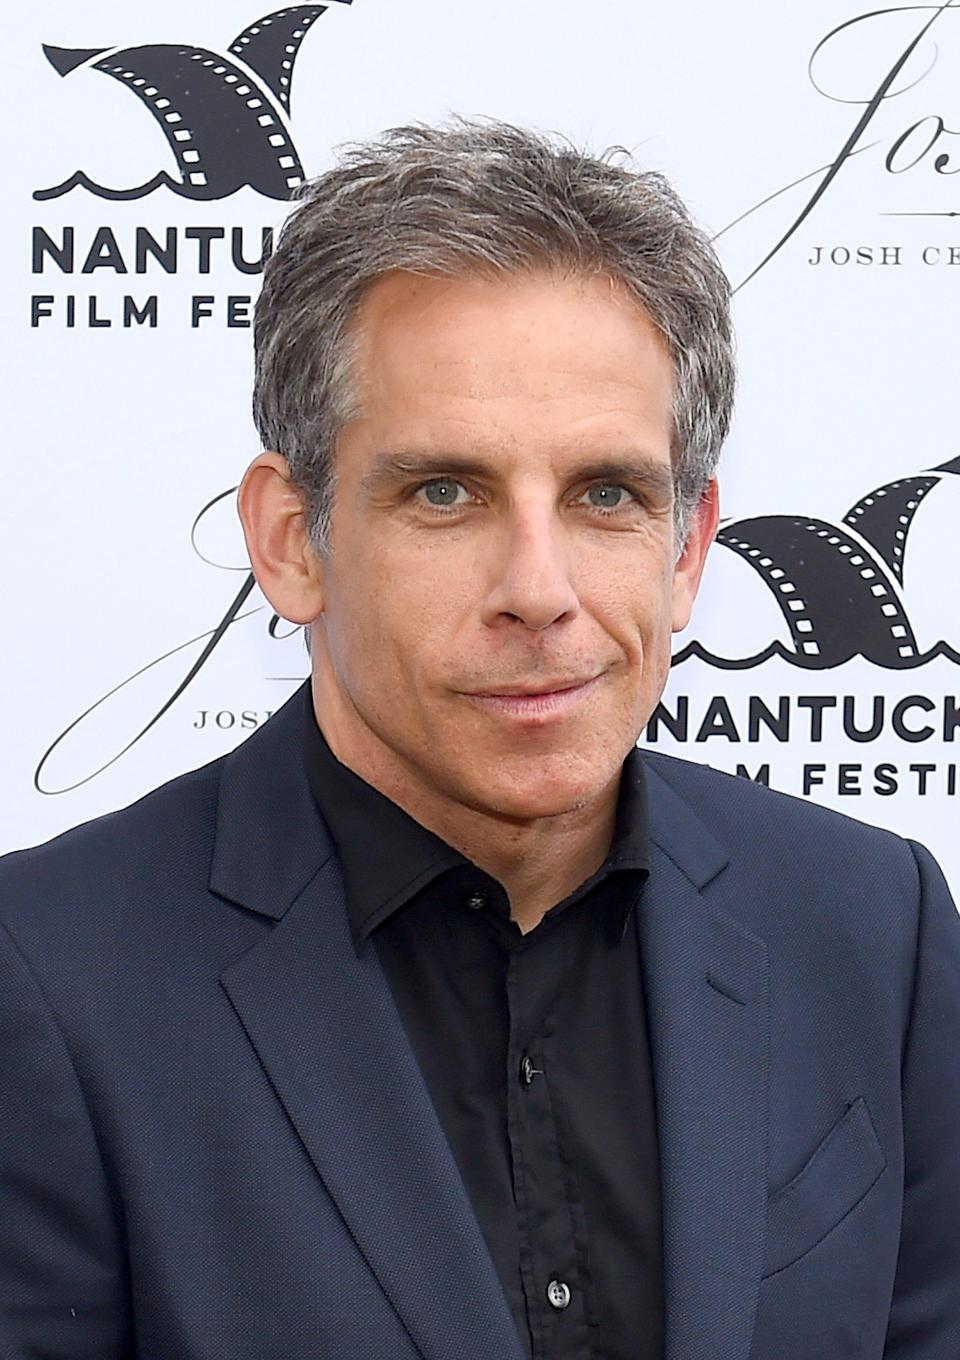 <p>Stiller has starred in numerous films since <strong>There's Something About Mary</strong> and has had multiple cameos in music videos and television shows. The actor's most notable projects are <strong>Zoolander</strong> and its sequel (<strong>Zoolander: Super Model</strong>), the Meet the Parents trilogy, <strong>Tropic Thunder</strong>, the Madagascar series, and the Night at the Museum trilogy.</p> <p>Stiller revealed he was prostate-cancer-free in September 2014 after being diagnosed and undergoing surgery that June. He has received several awards and honors, including multiple MTV Movie Awards and the Charlie Chaplin Britannia Award For Excellence in Comedy by BAFTA Los Angeles.</p>